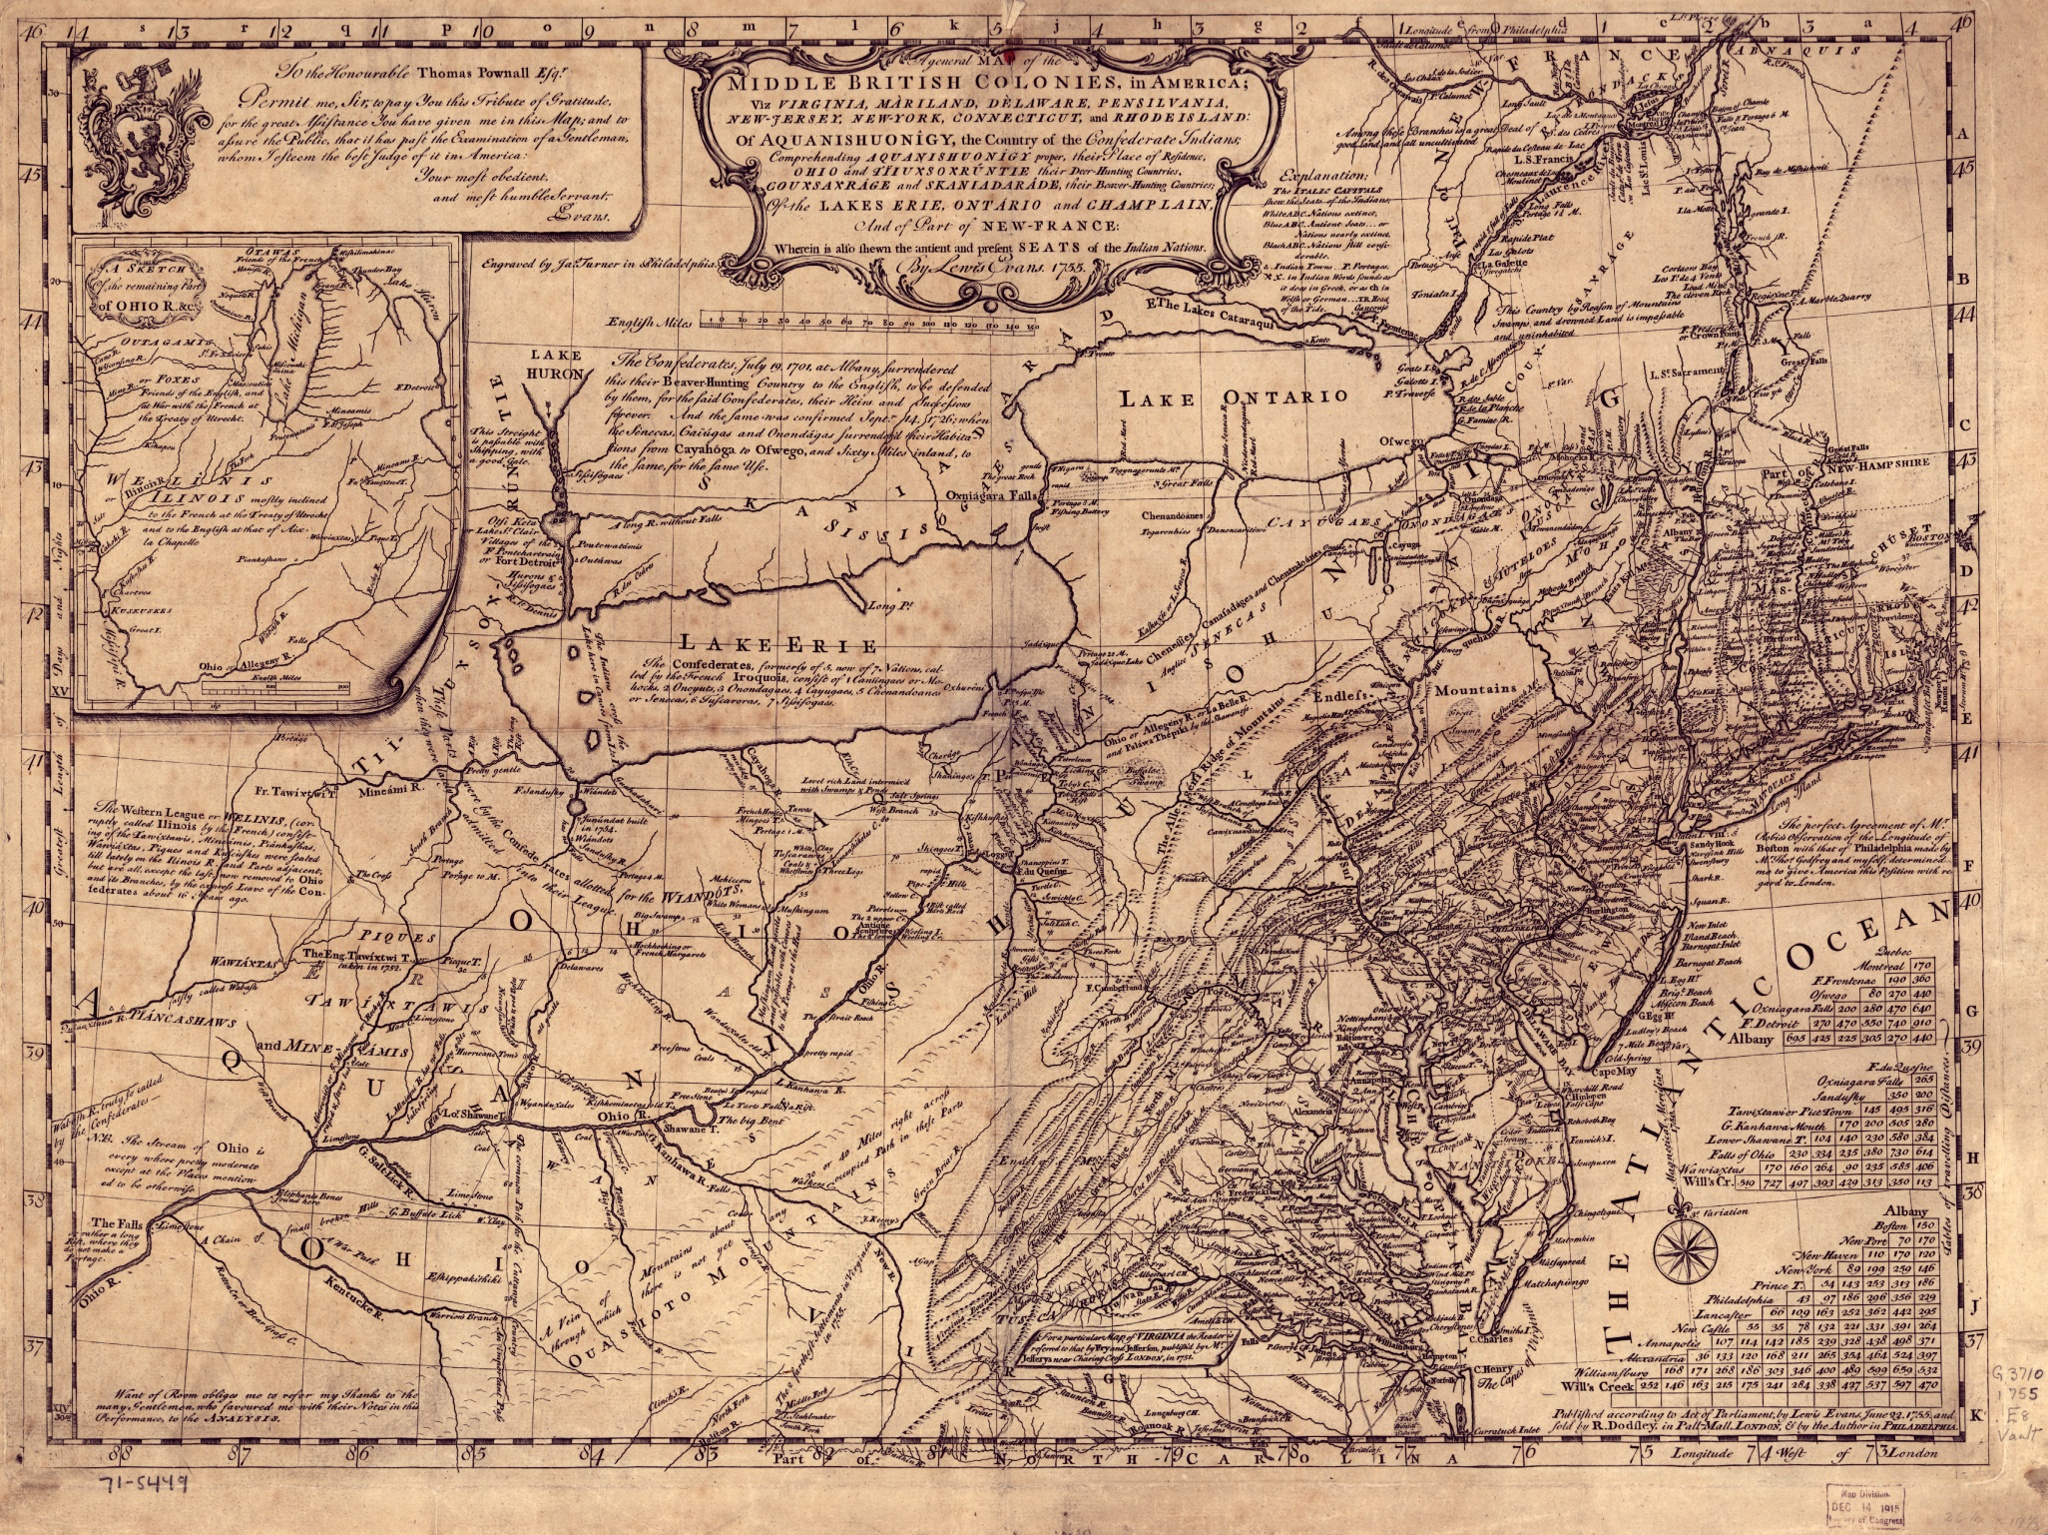 Evans' ''General Map of the Middle British Colonies in America'', published in 1755, was made in collaboration with [[Thomas Pownall